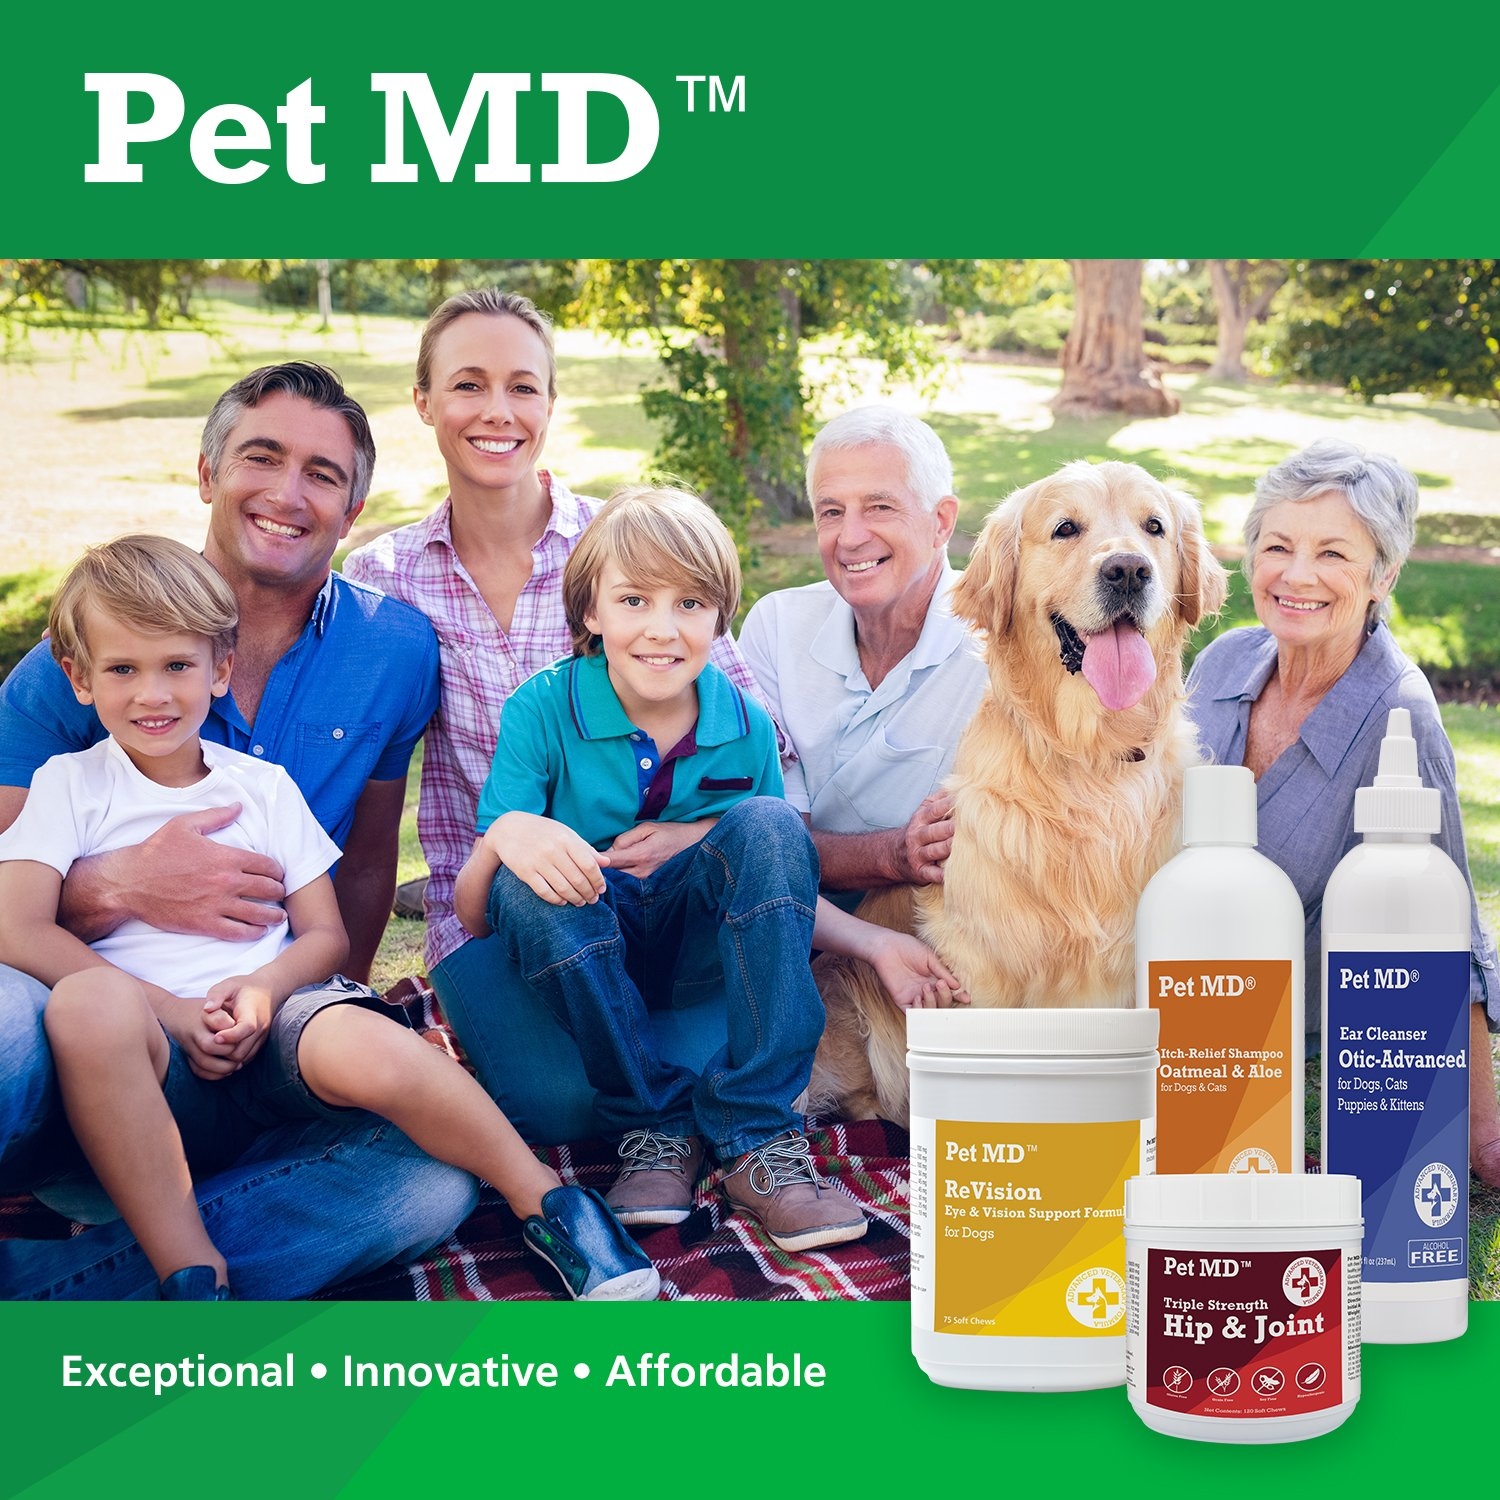 Pet MD - Canine Tabs Plus 365 Count - Advanced Multivitamins for Dogs - Natural Daily Vitamin and Mineral Nutritional Supplement - Liver Flavored Chewable Tablets by Pet MD (Image #7)